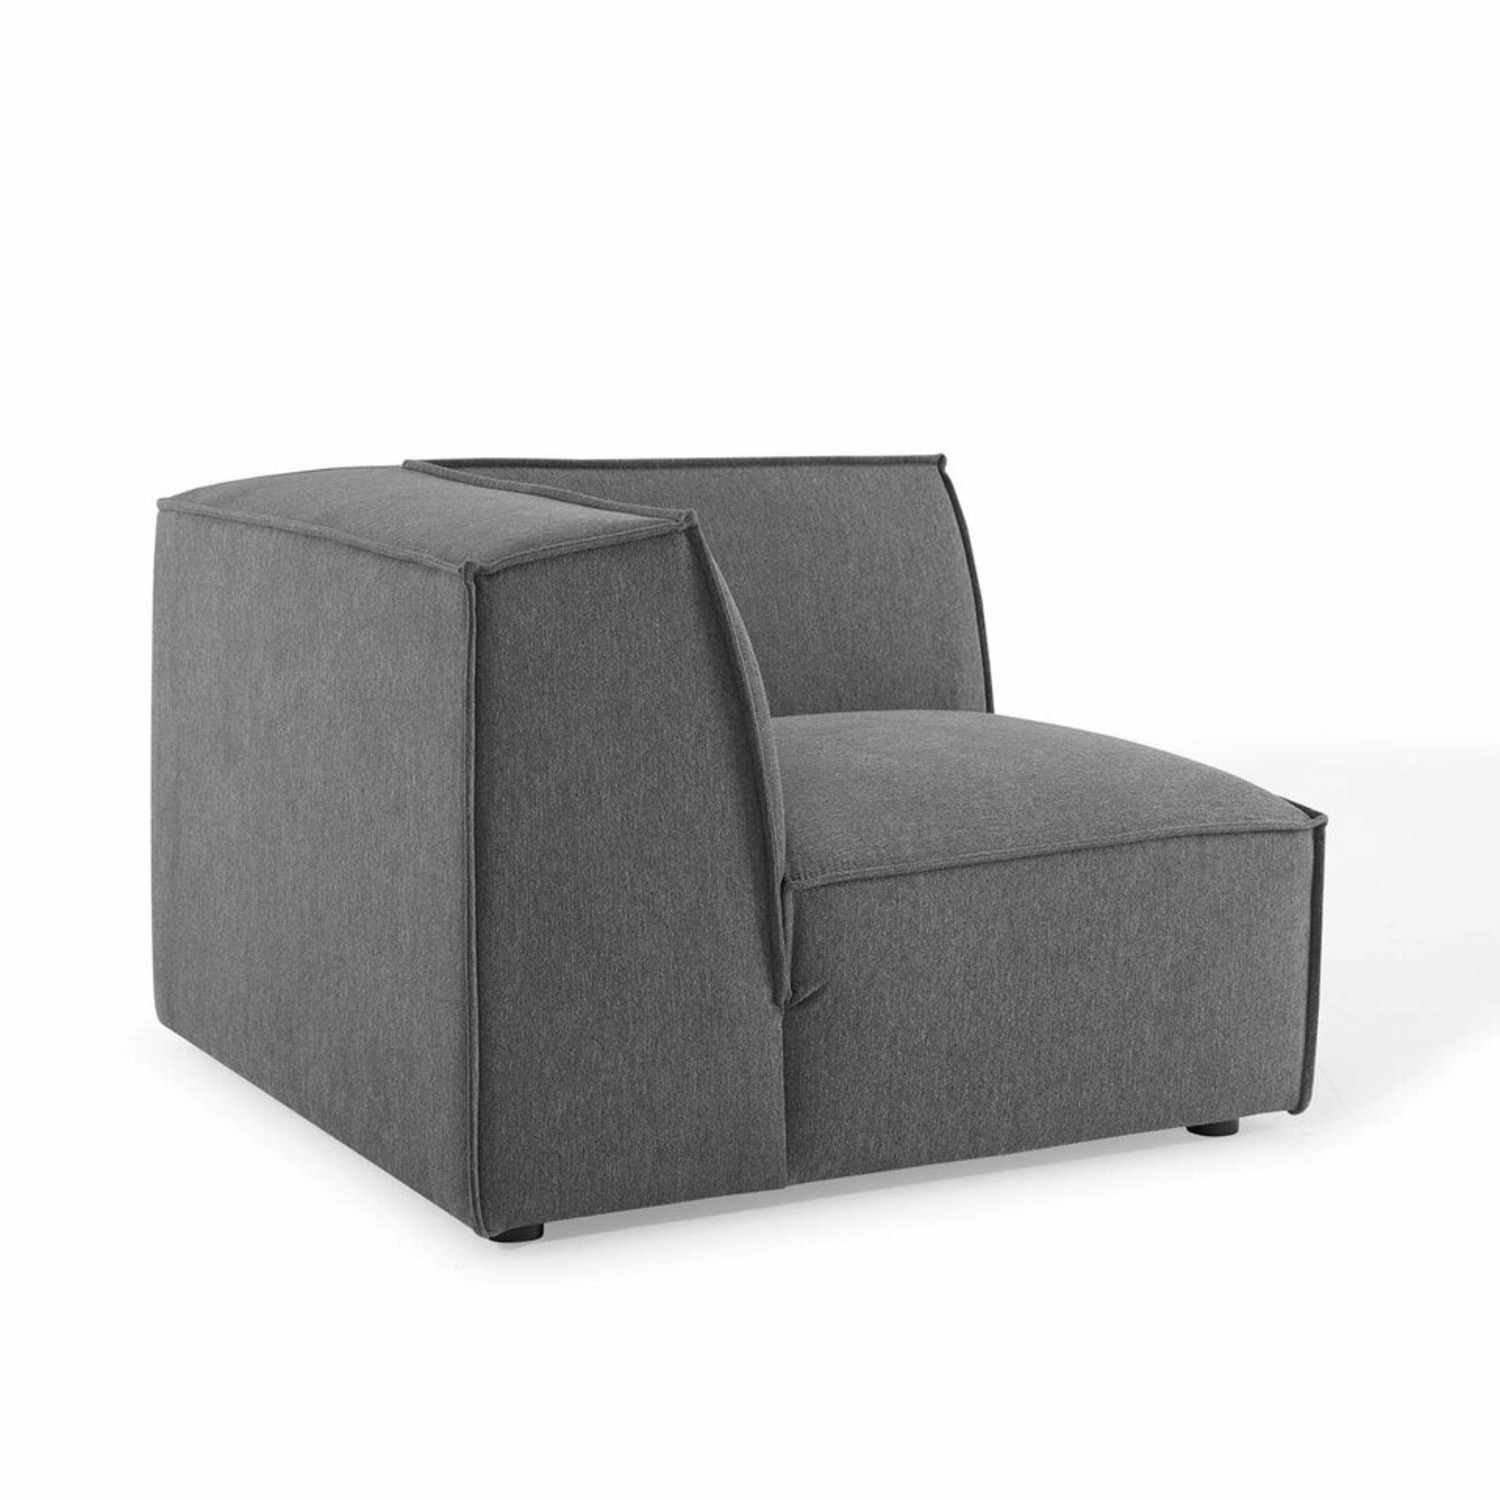 8-Piece Sectional Sofa In Charcoal Fabric Finish - image-5